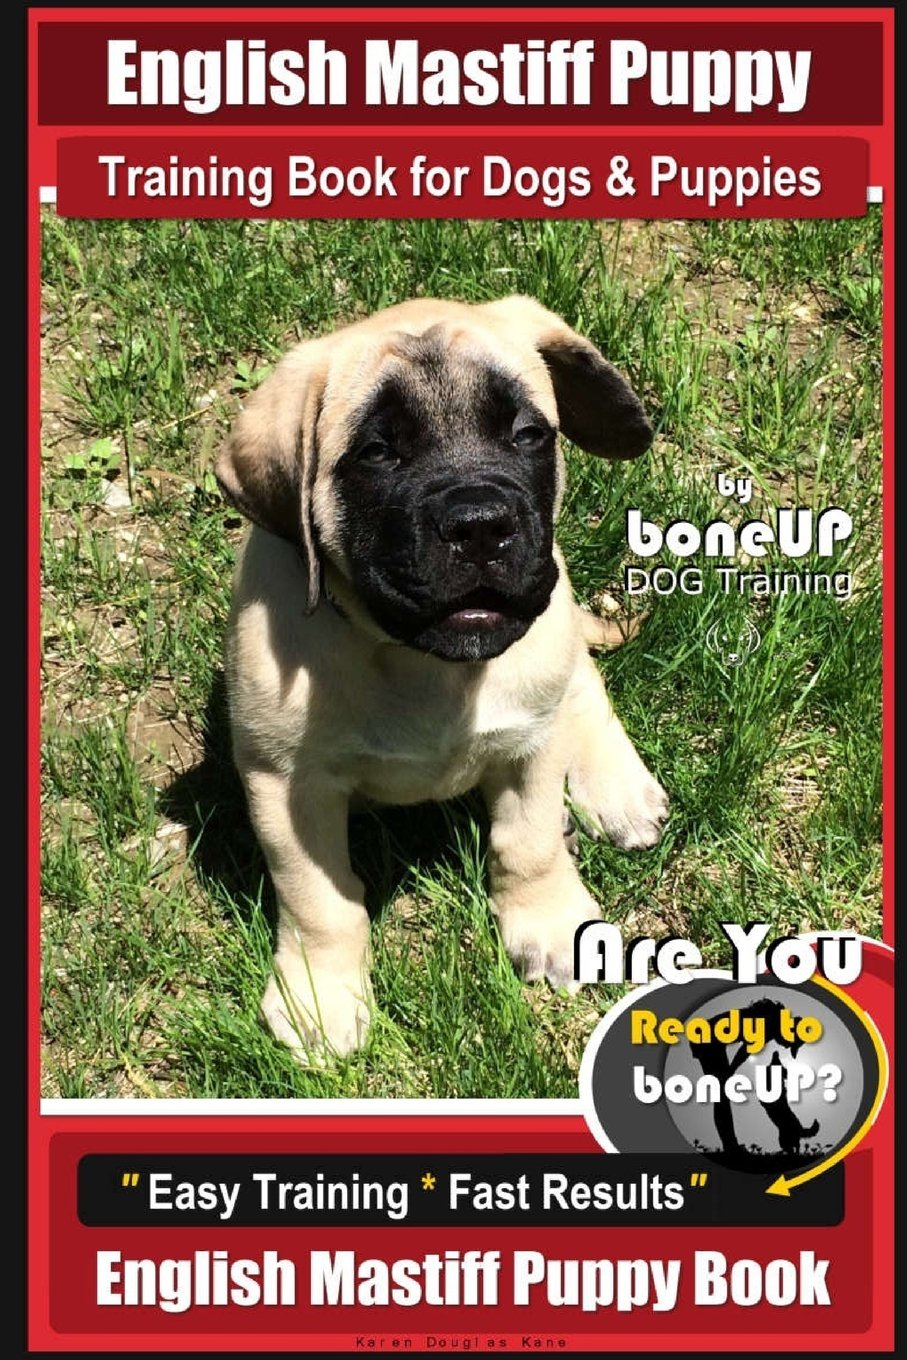 Download English Mastiff Puppy Training Book for Dogs and Puppies by Bone Up Dog Training: Are You Ready to Bone Up? Easy Training * Fast Results English Mastiff Puppy Book pdf